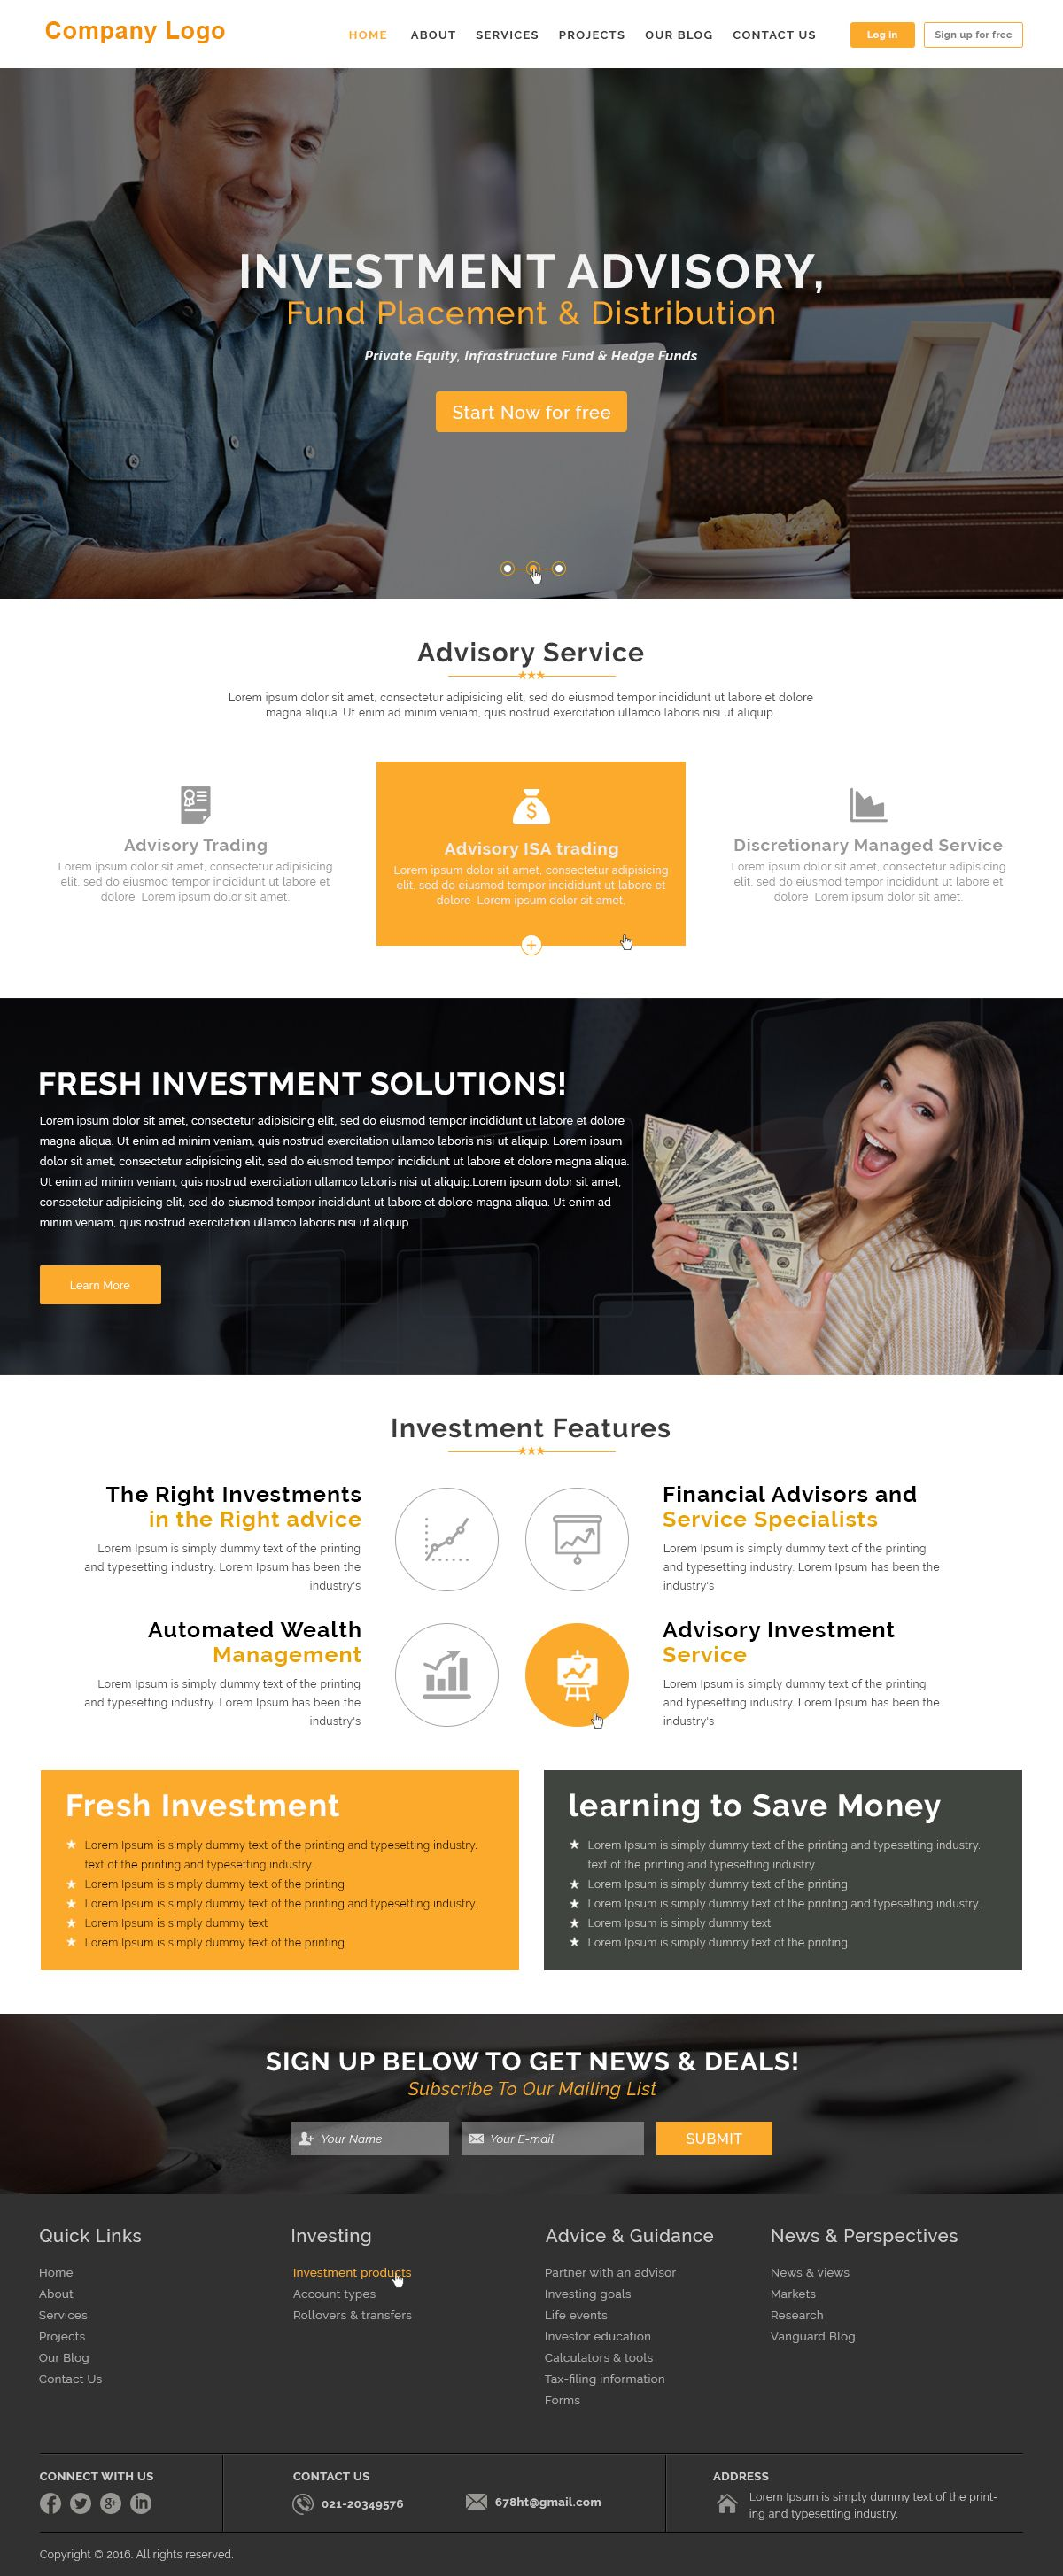 Investment company website templates this highly customizable investment company website templates this highly customizable business template can be used in many business verticals including accounting flashek Gallery